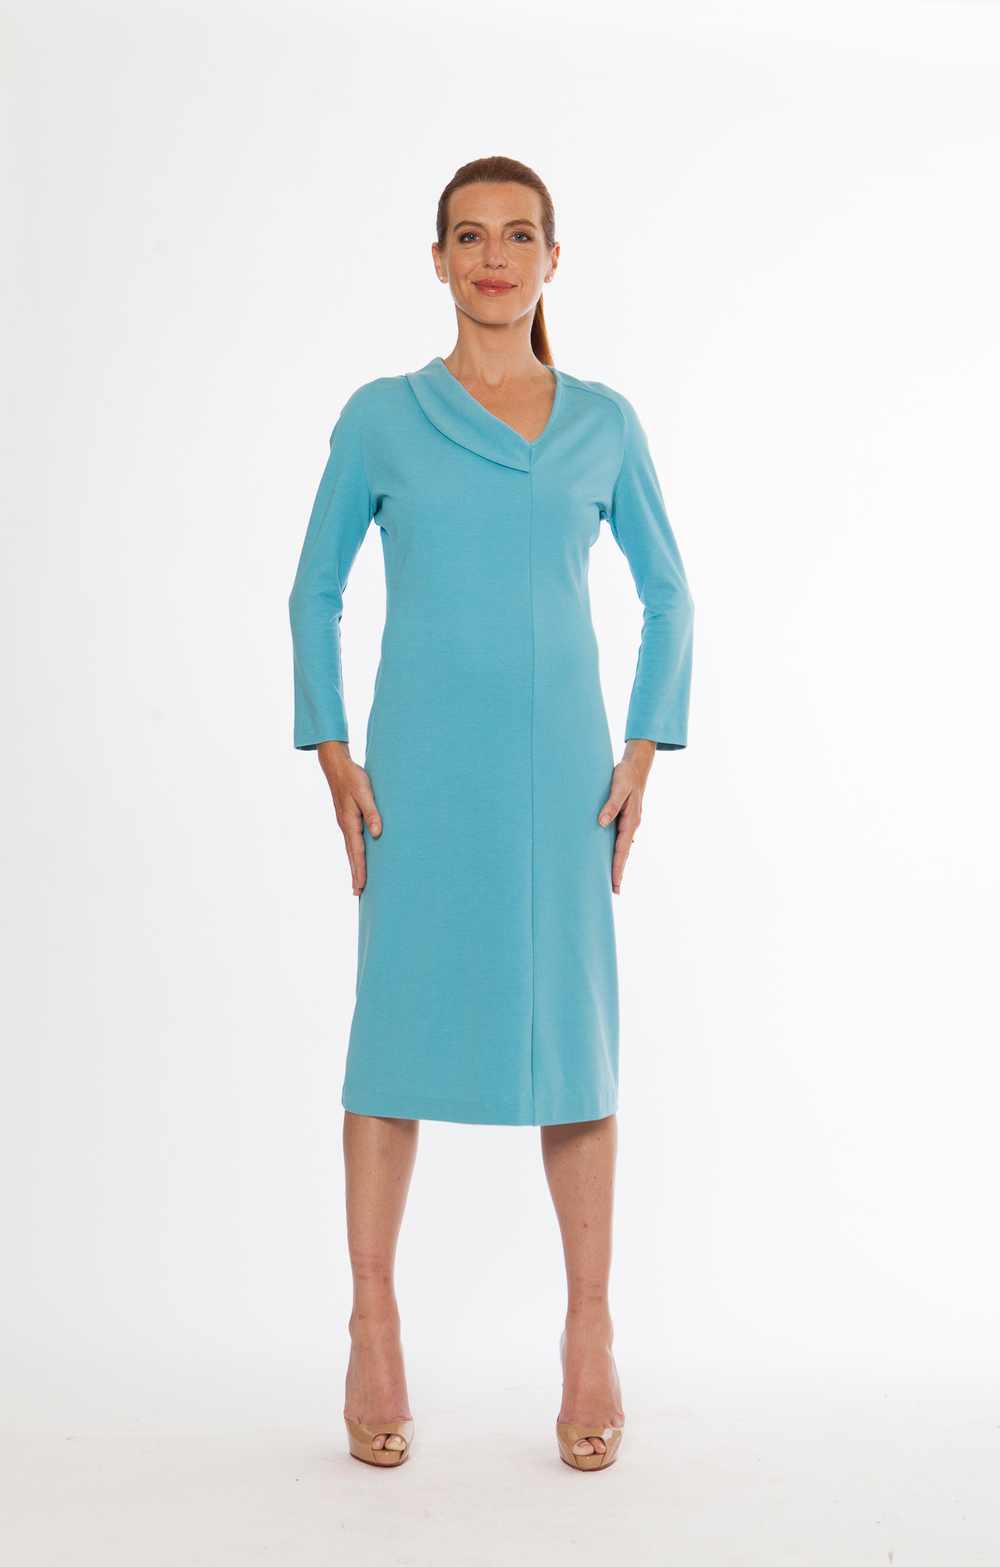 Wave Dress, 7/8th Sleeves